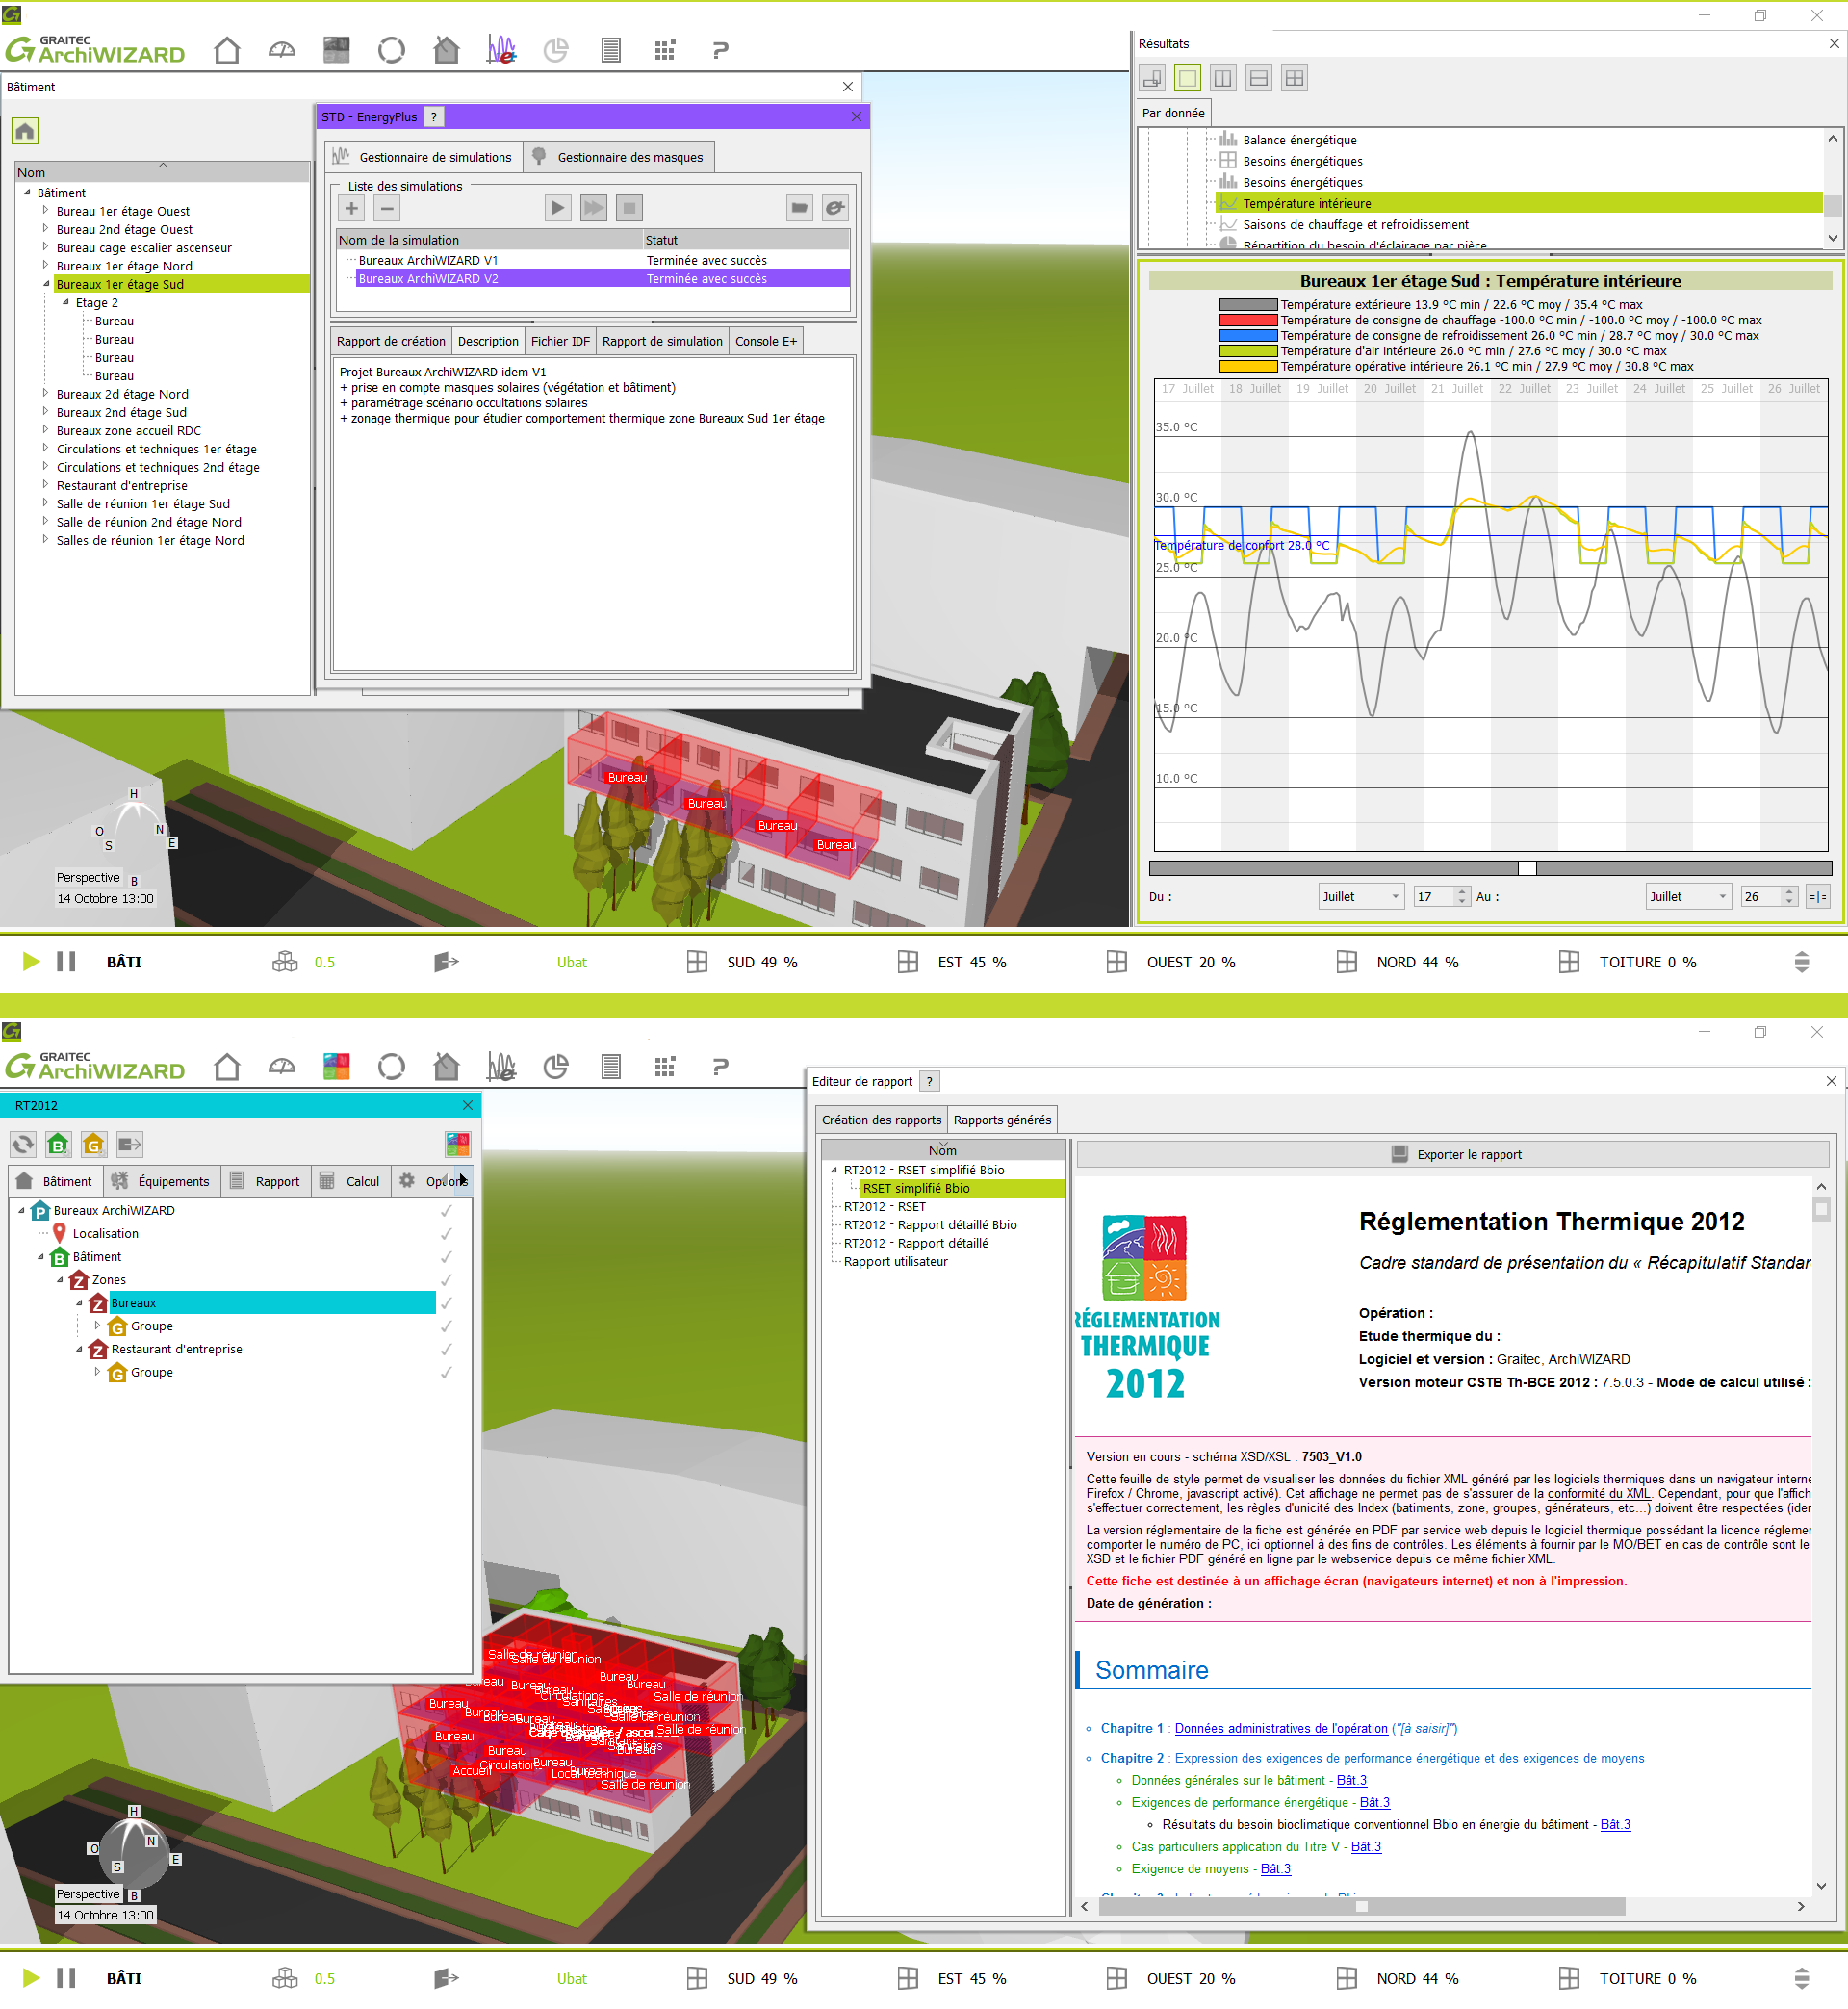 ArchiWIZARD - STD et CALCUL RT2012